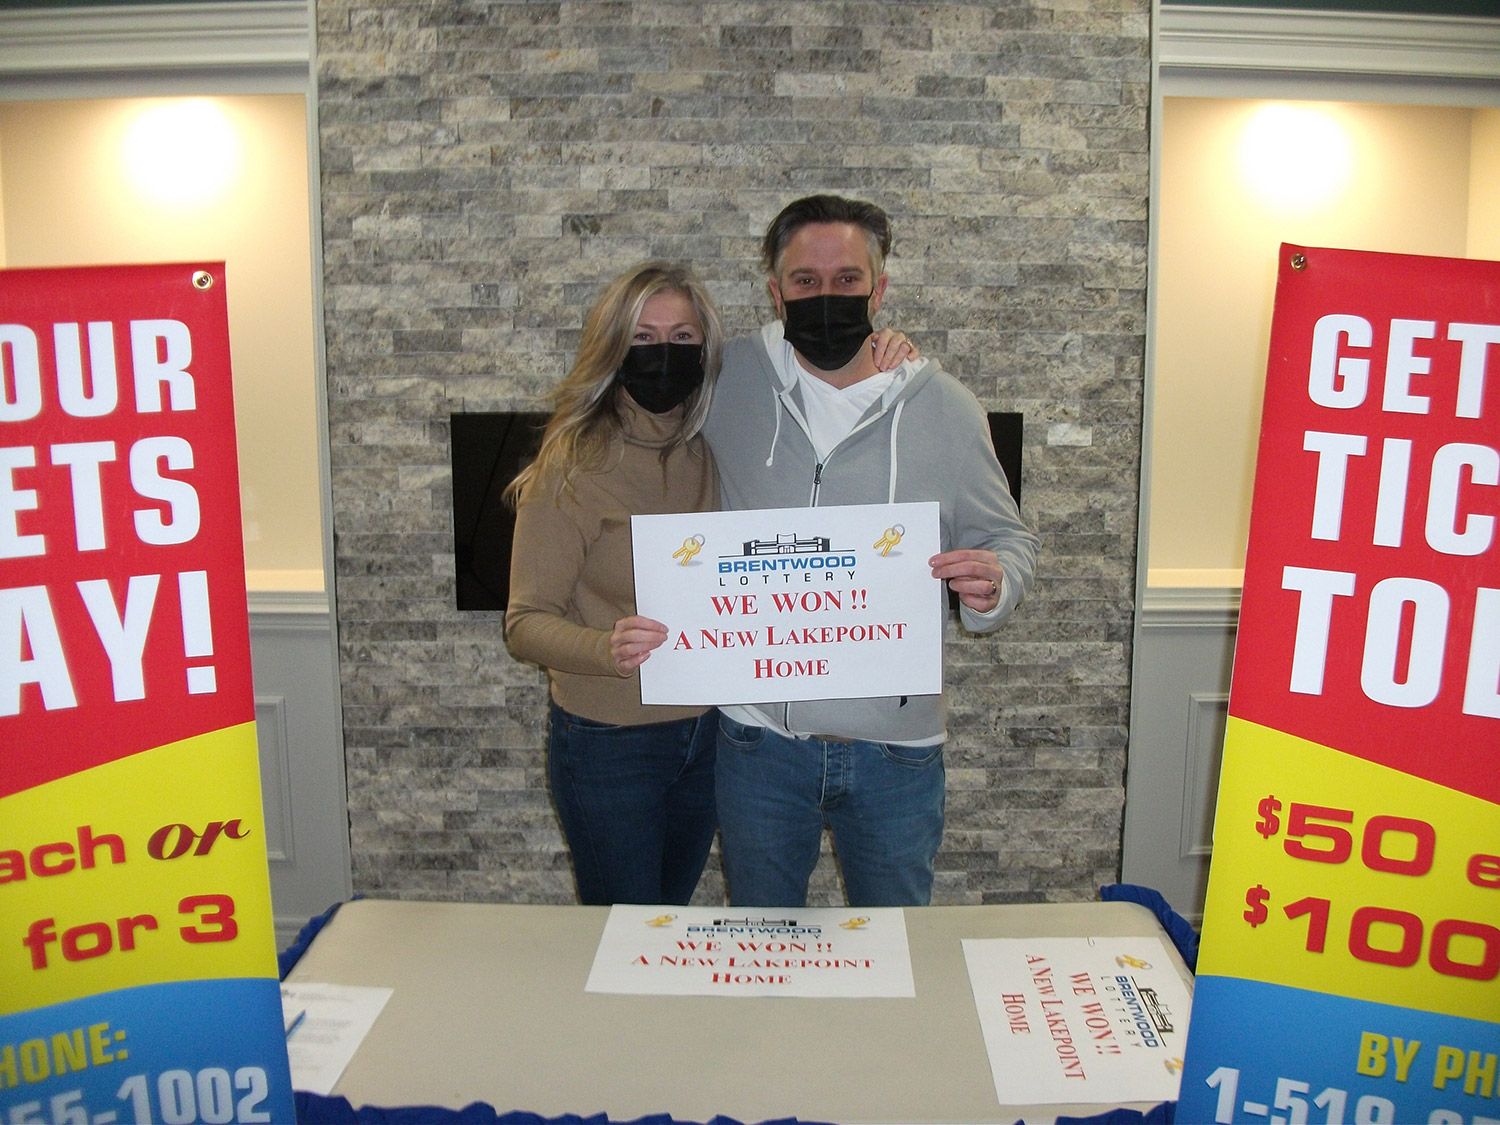 Congratulations to Craig & Mary Moro, our Dream Home winners!